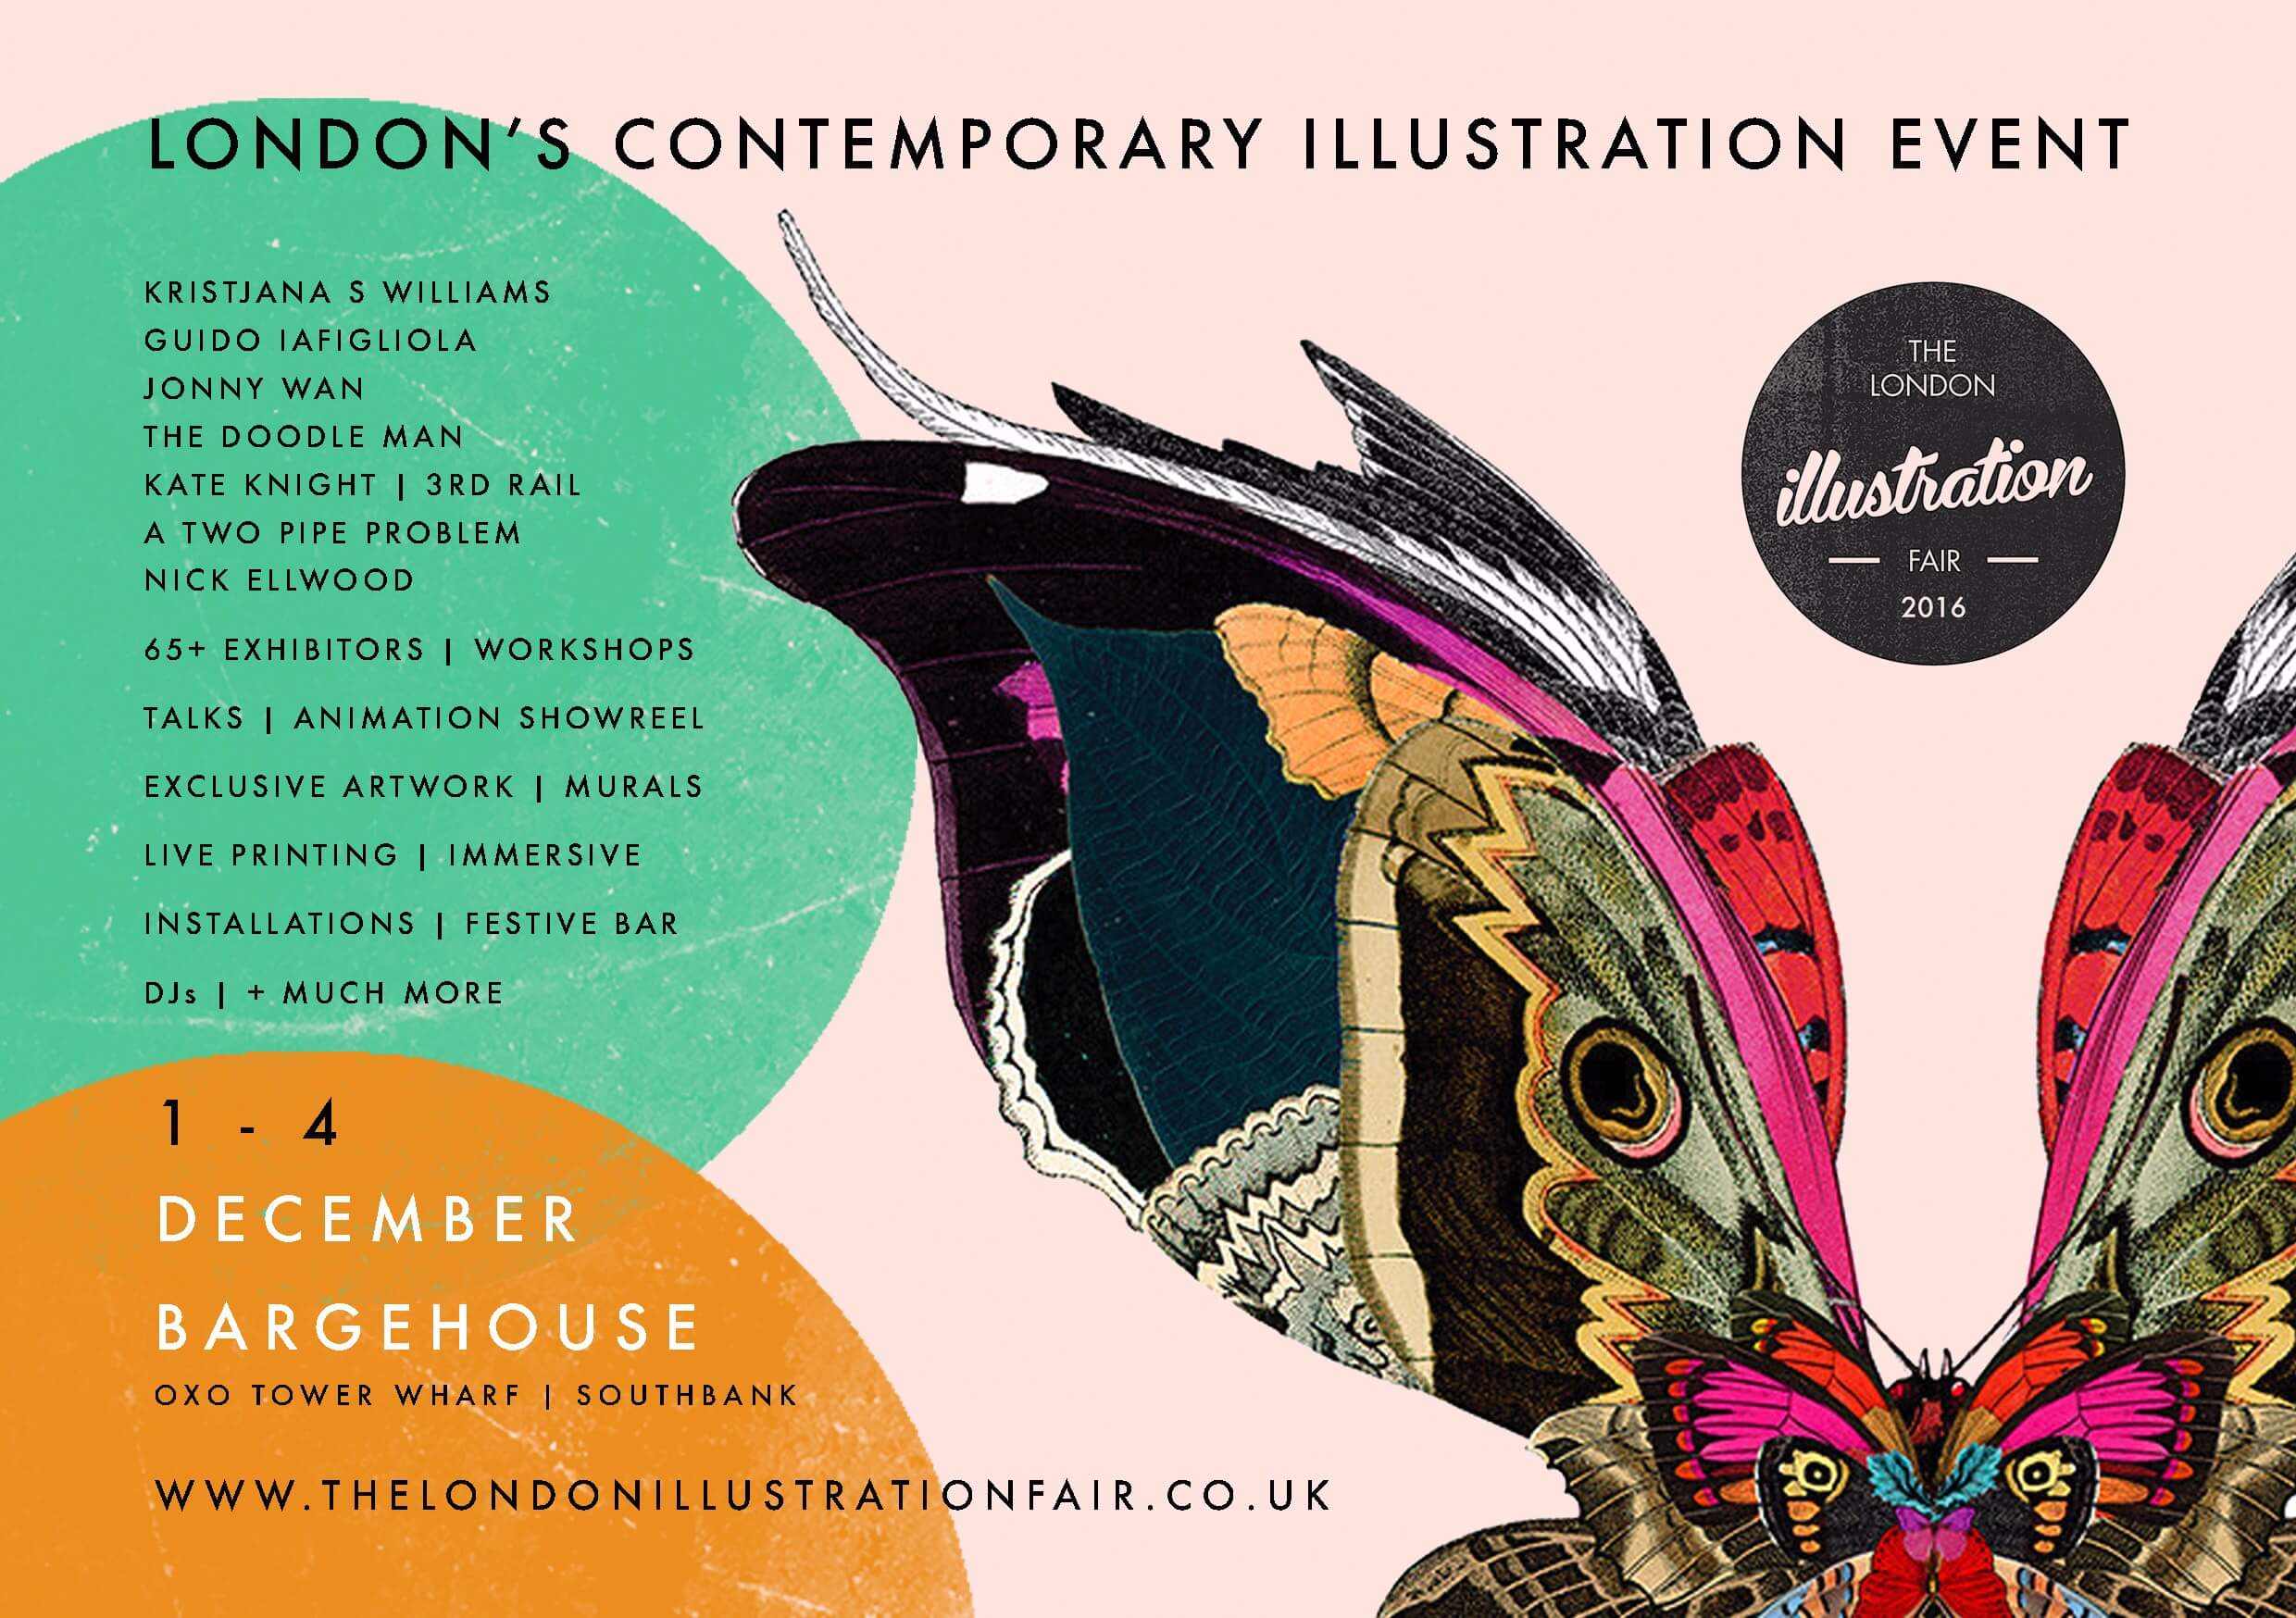 A Quick Q&A With London Illustration Fair Co-Founder Sam Bennett